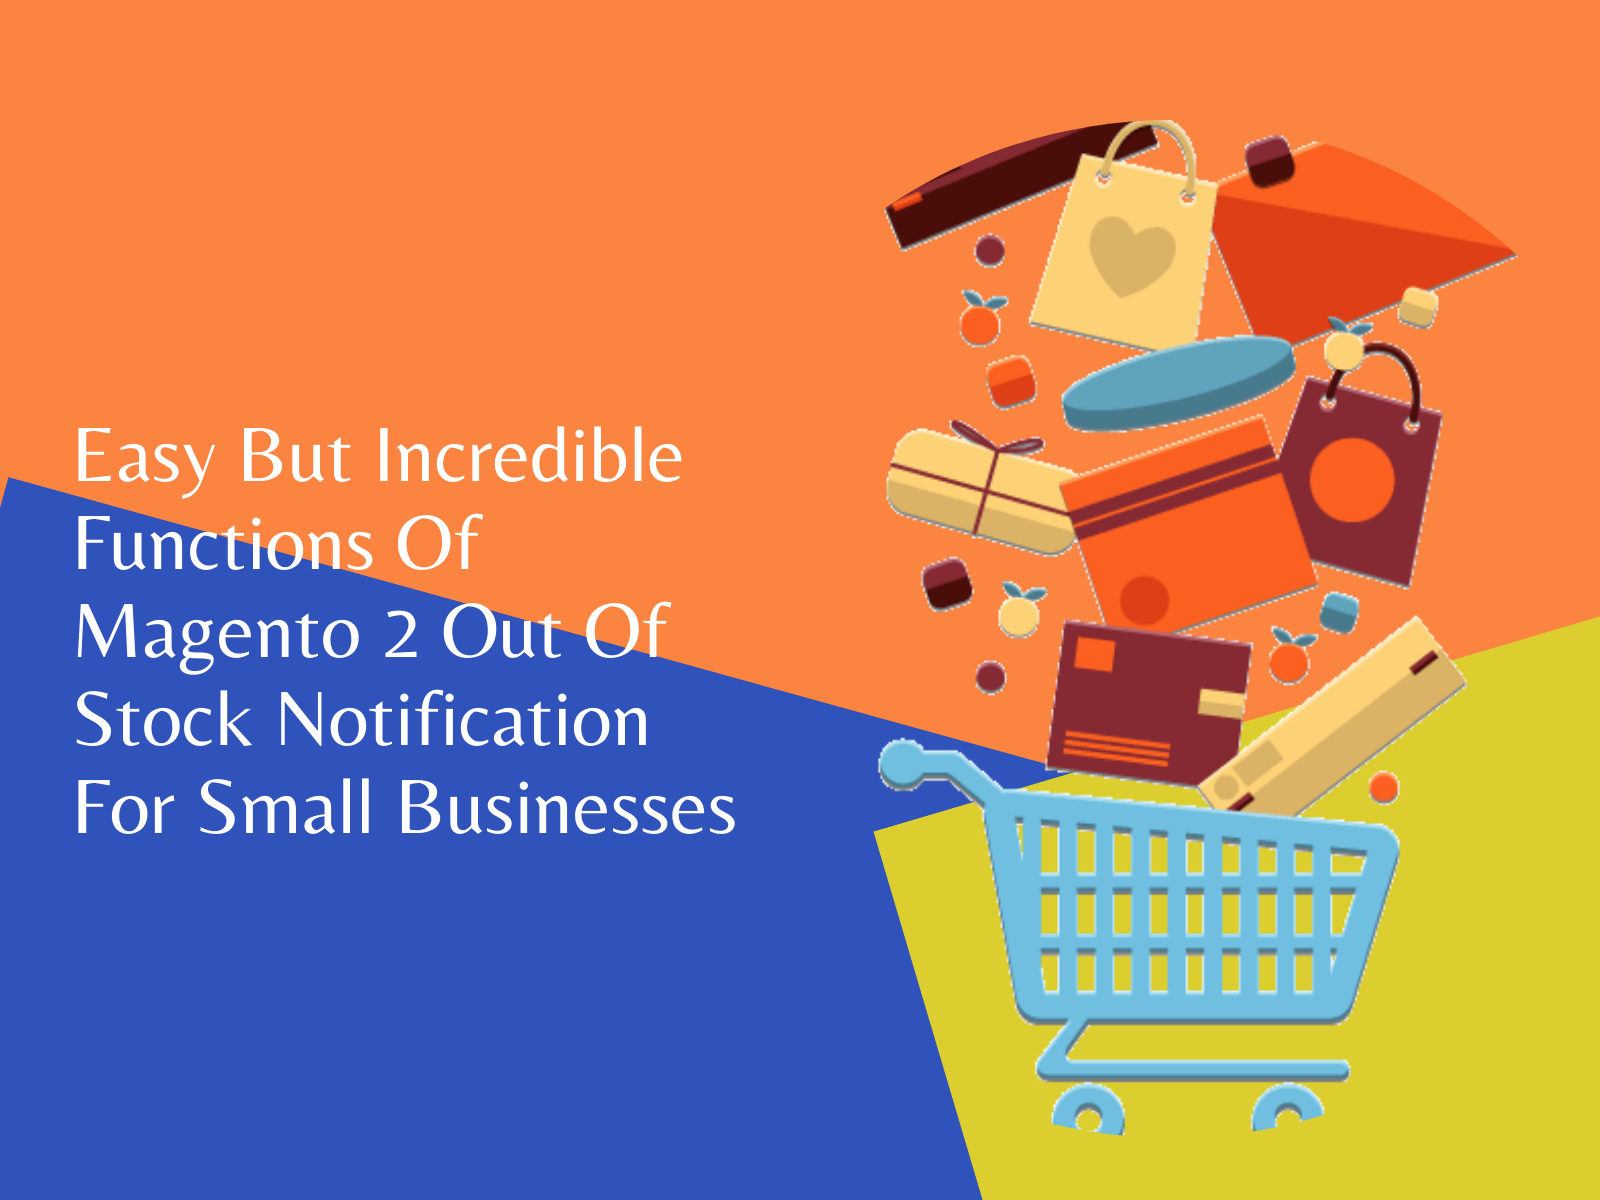 Easy But Incredible Functions Of Magento 2 Out Of Stock Notification For Small Businesses